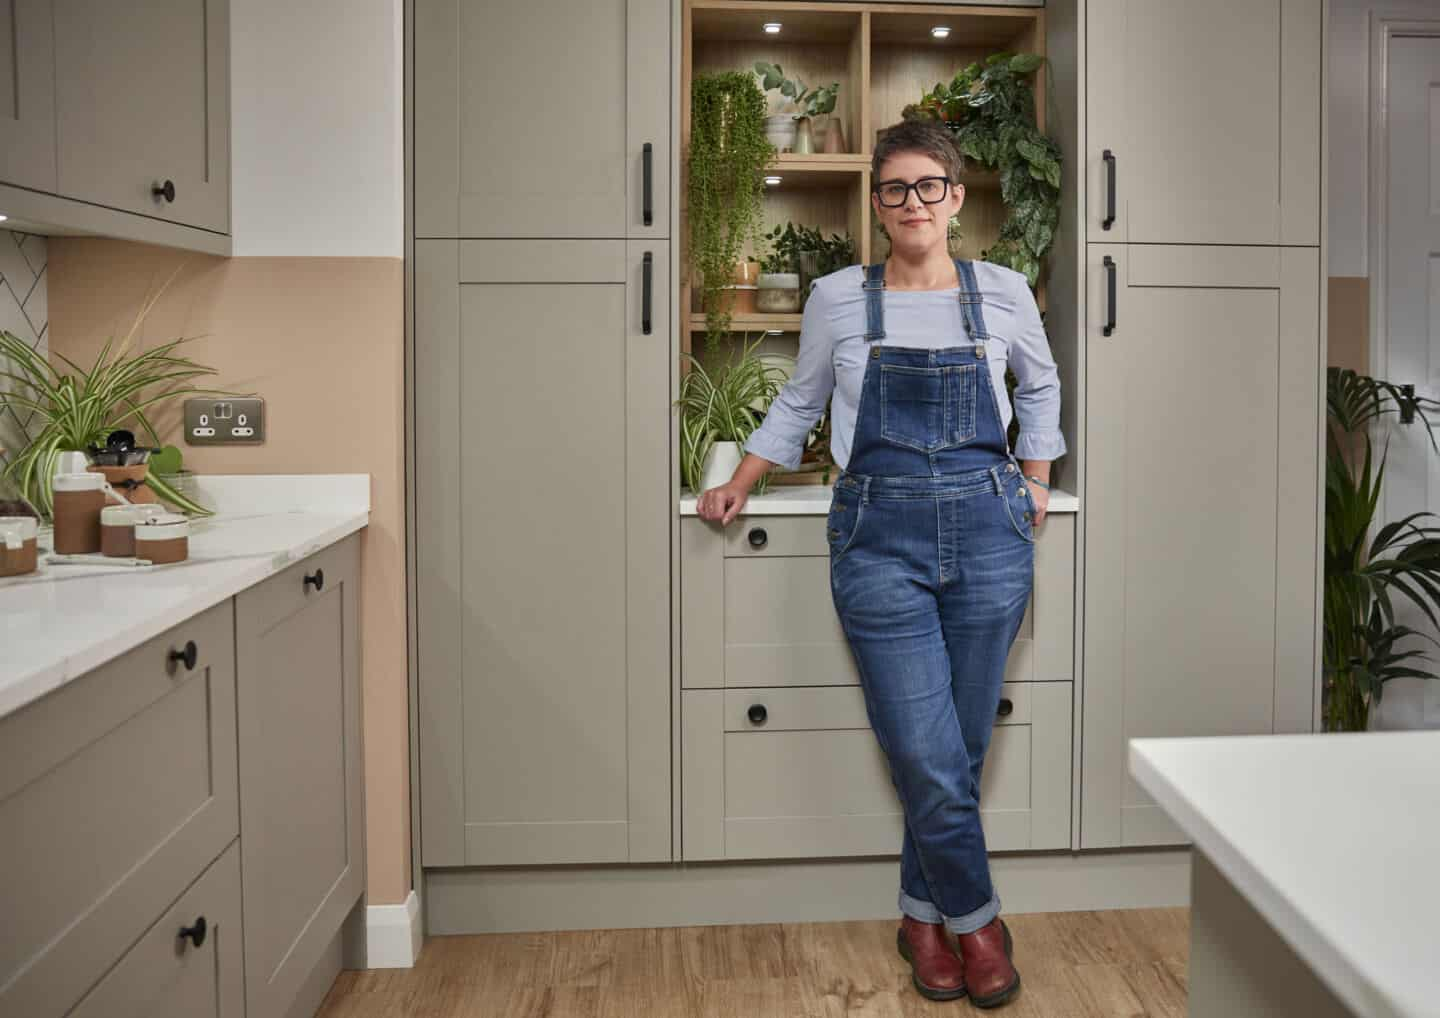 Blogger Stacey Sheppard stands in Magnet's Tatton Kitchen in front of built-in shelving full of plants. She shares tips for creating biophilic kitchen designs